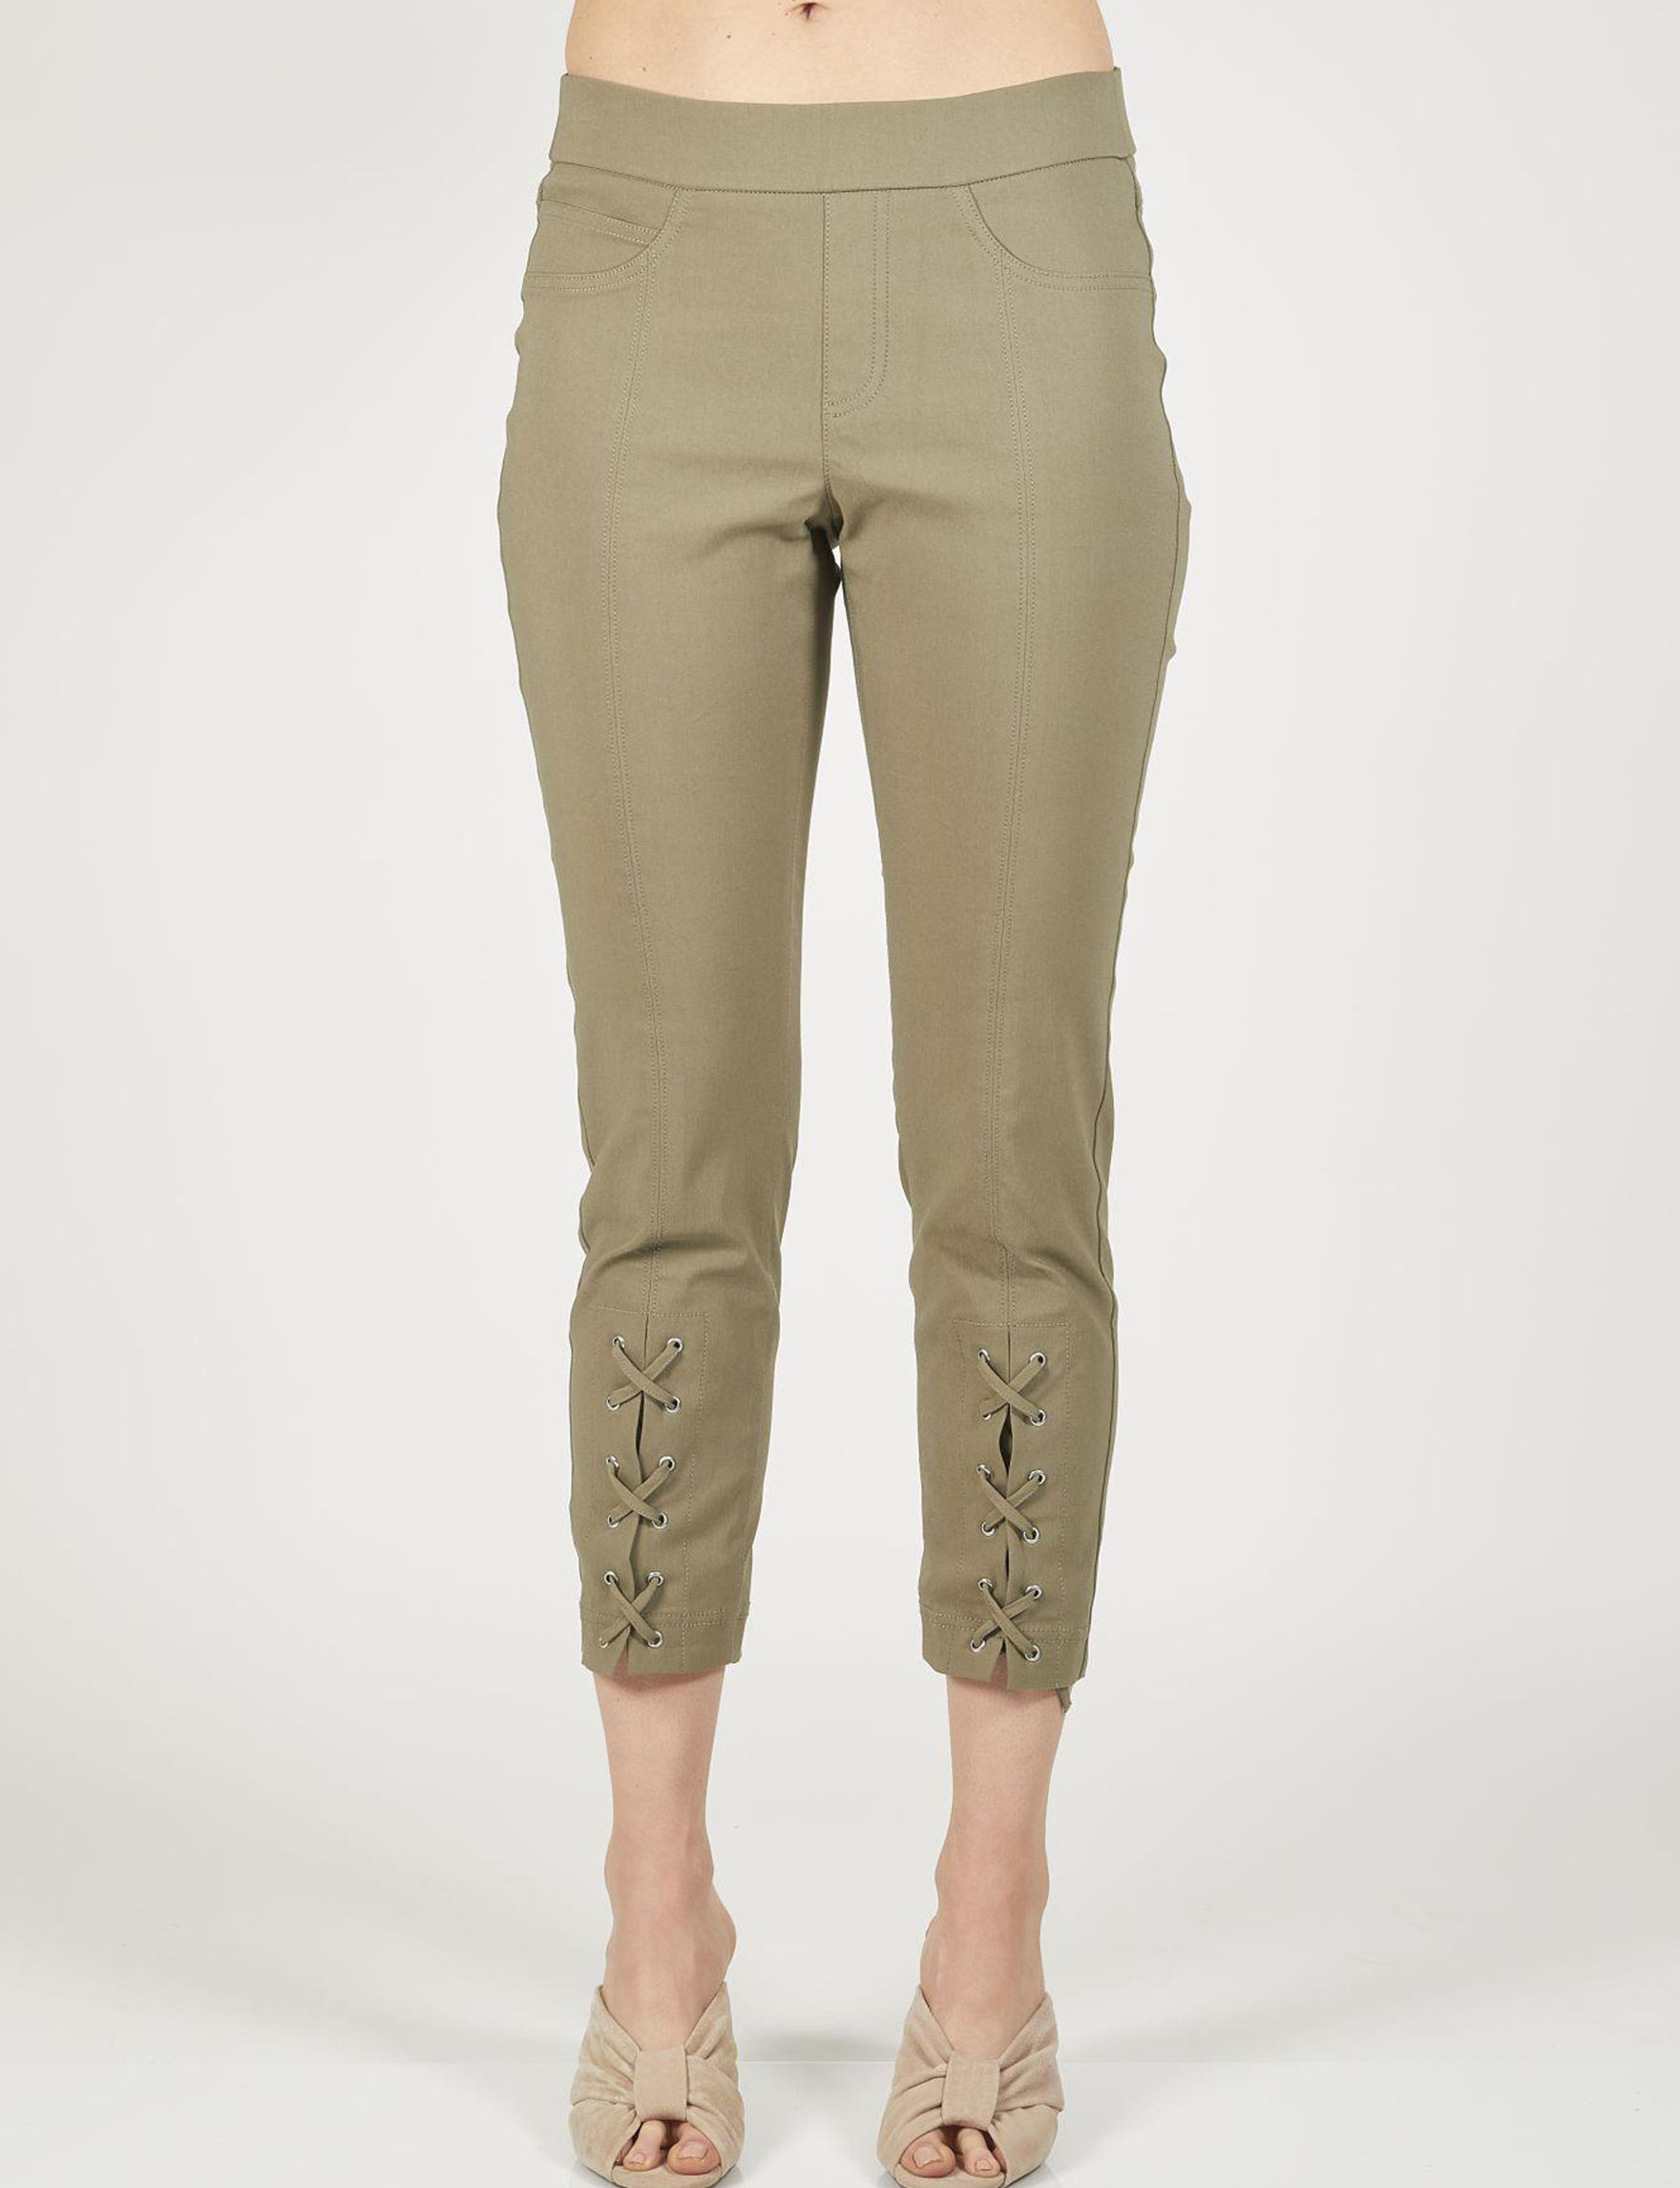 Skyes The Limit Olive Capris & Crops